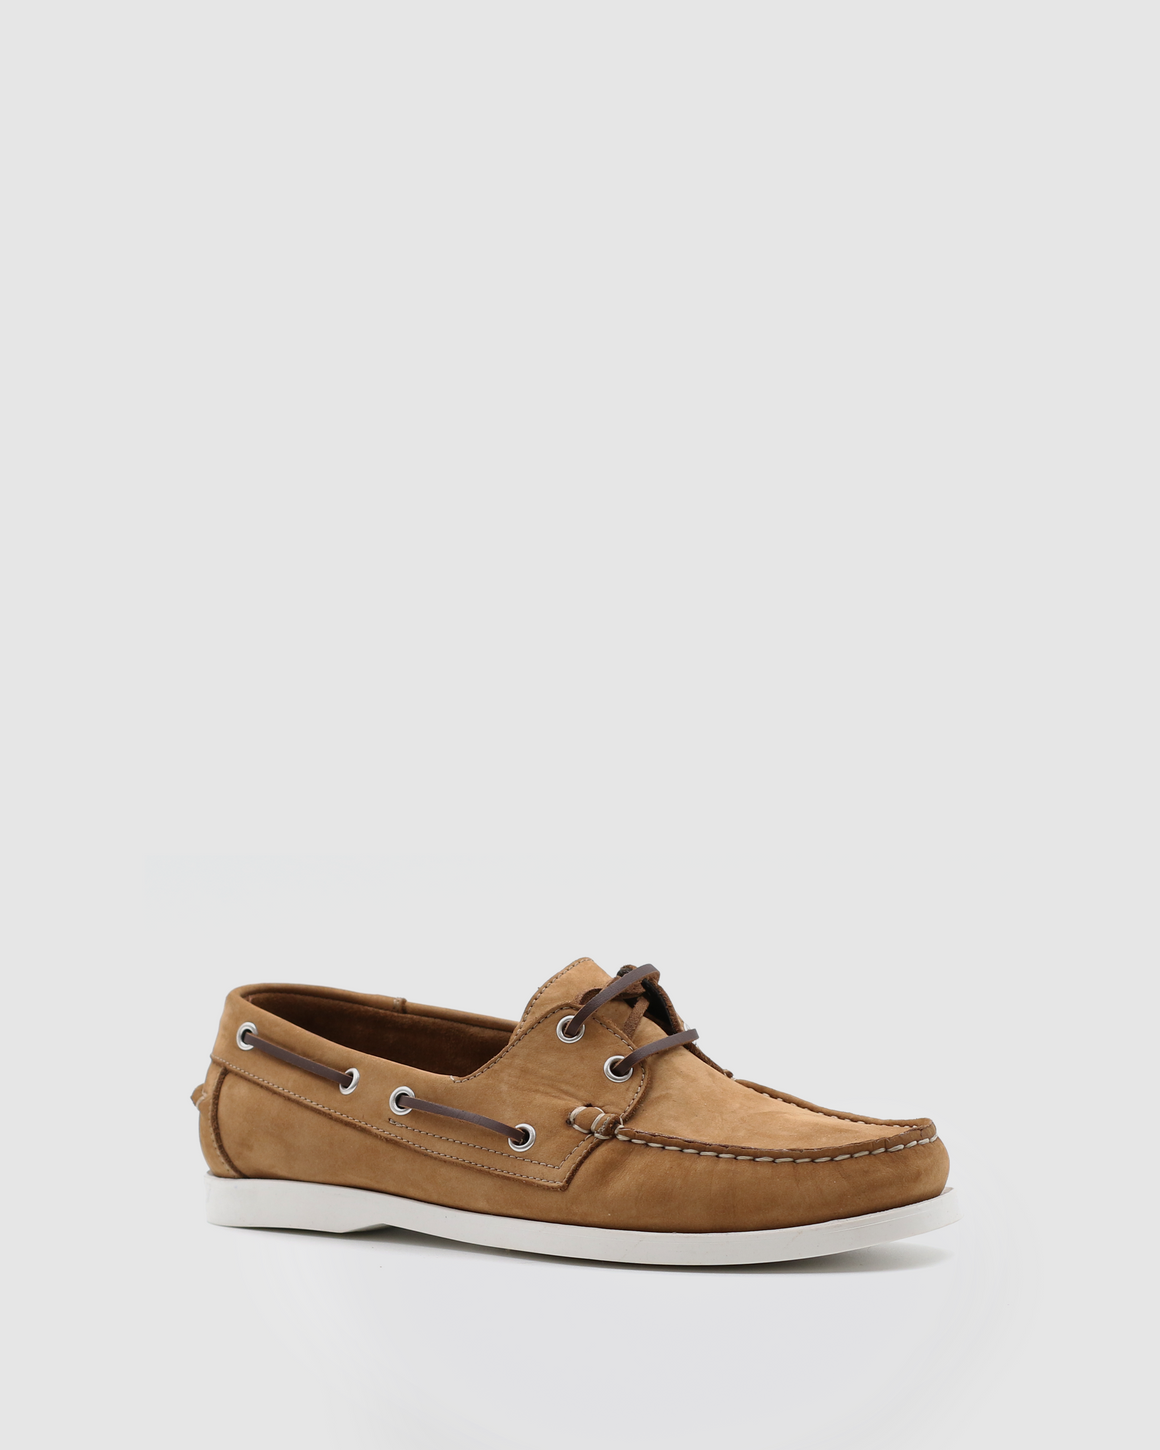 Menorca - Boat Shoes - Camel